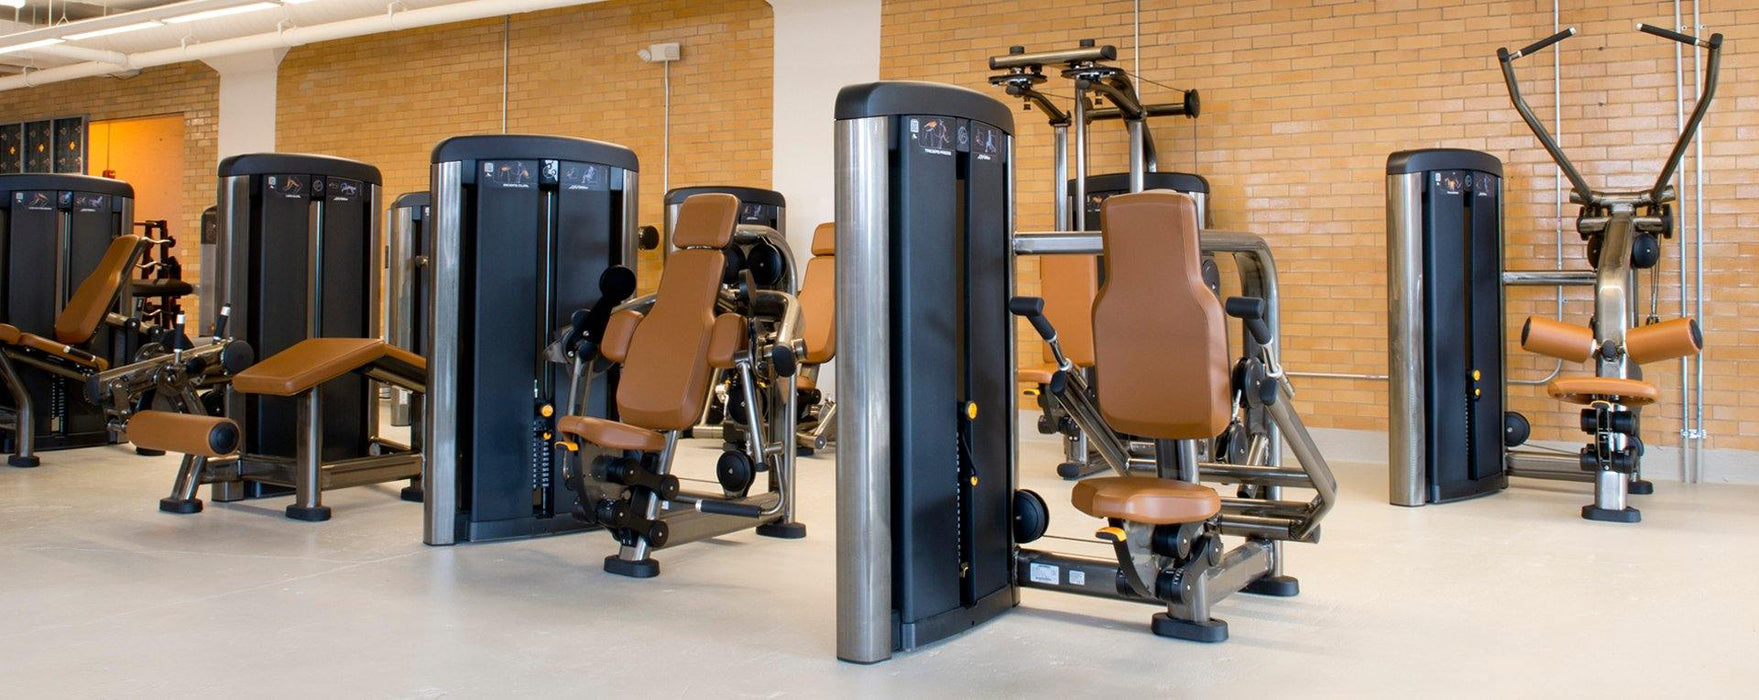 Life Fitness Insignia Series Triceps Press Selectorised